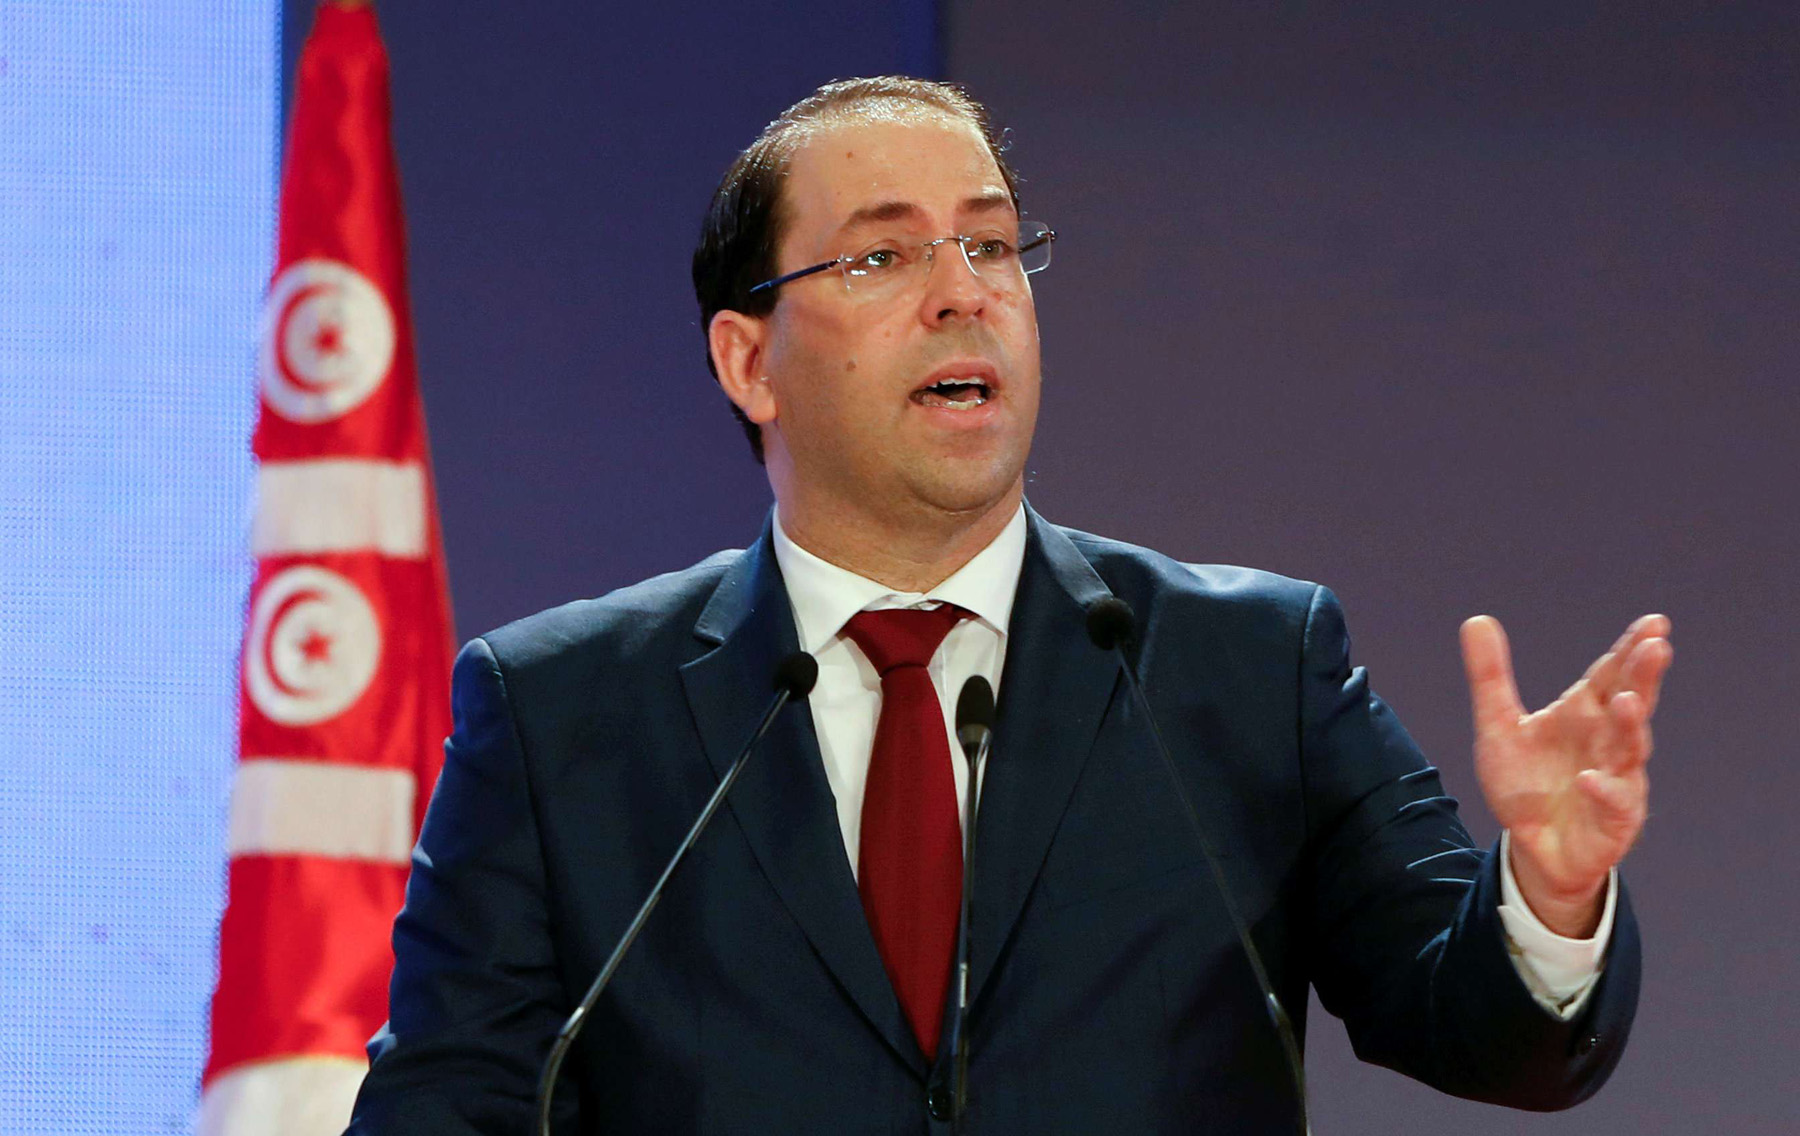 Tunisia's Prime Minister Youssef Chahed speaks during a national conference over 2019 budget in Tunis, Tunisia, September 14, 2018. (Reuters)